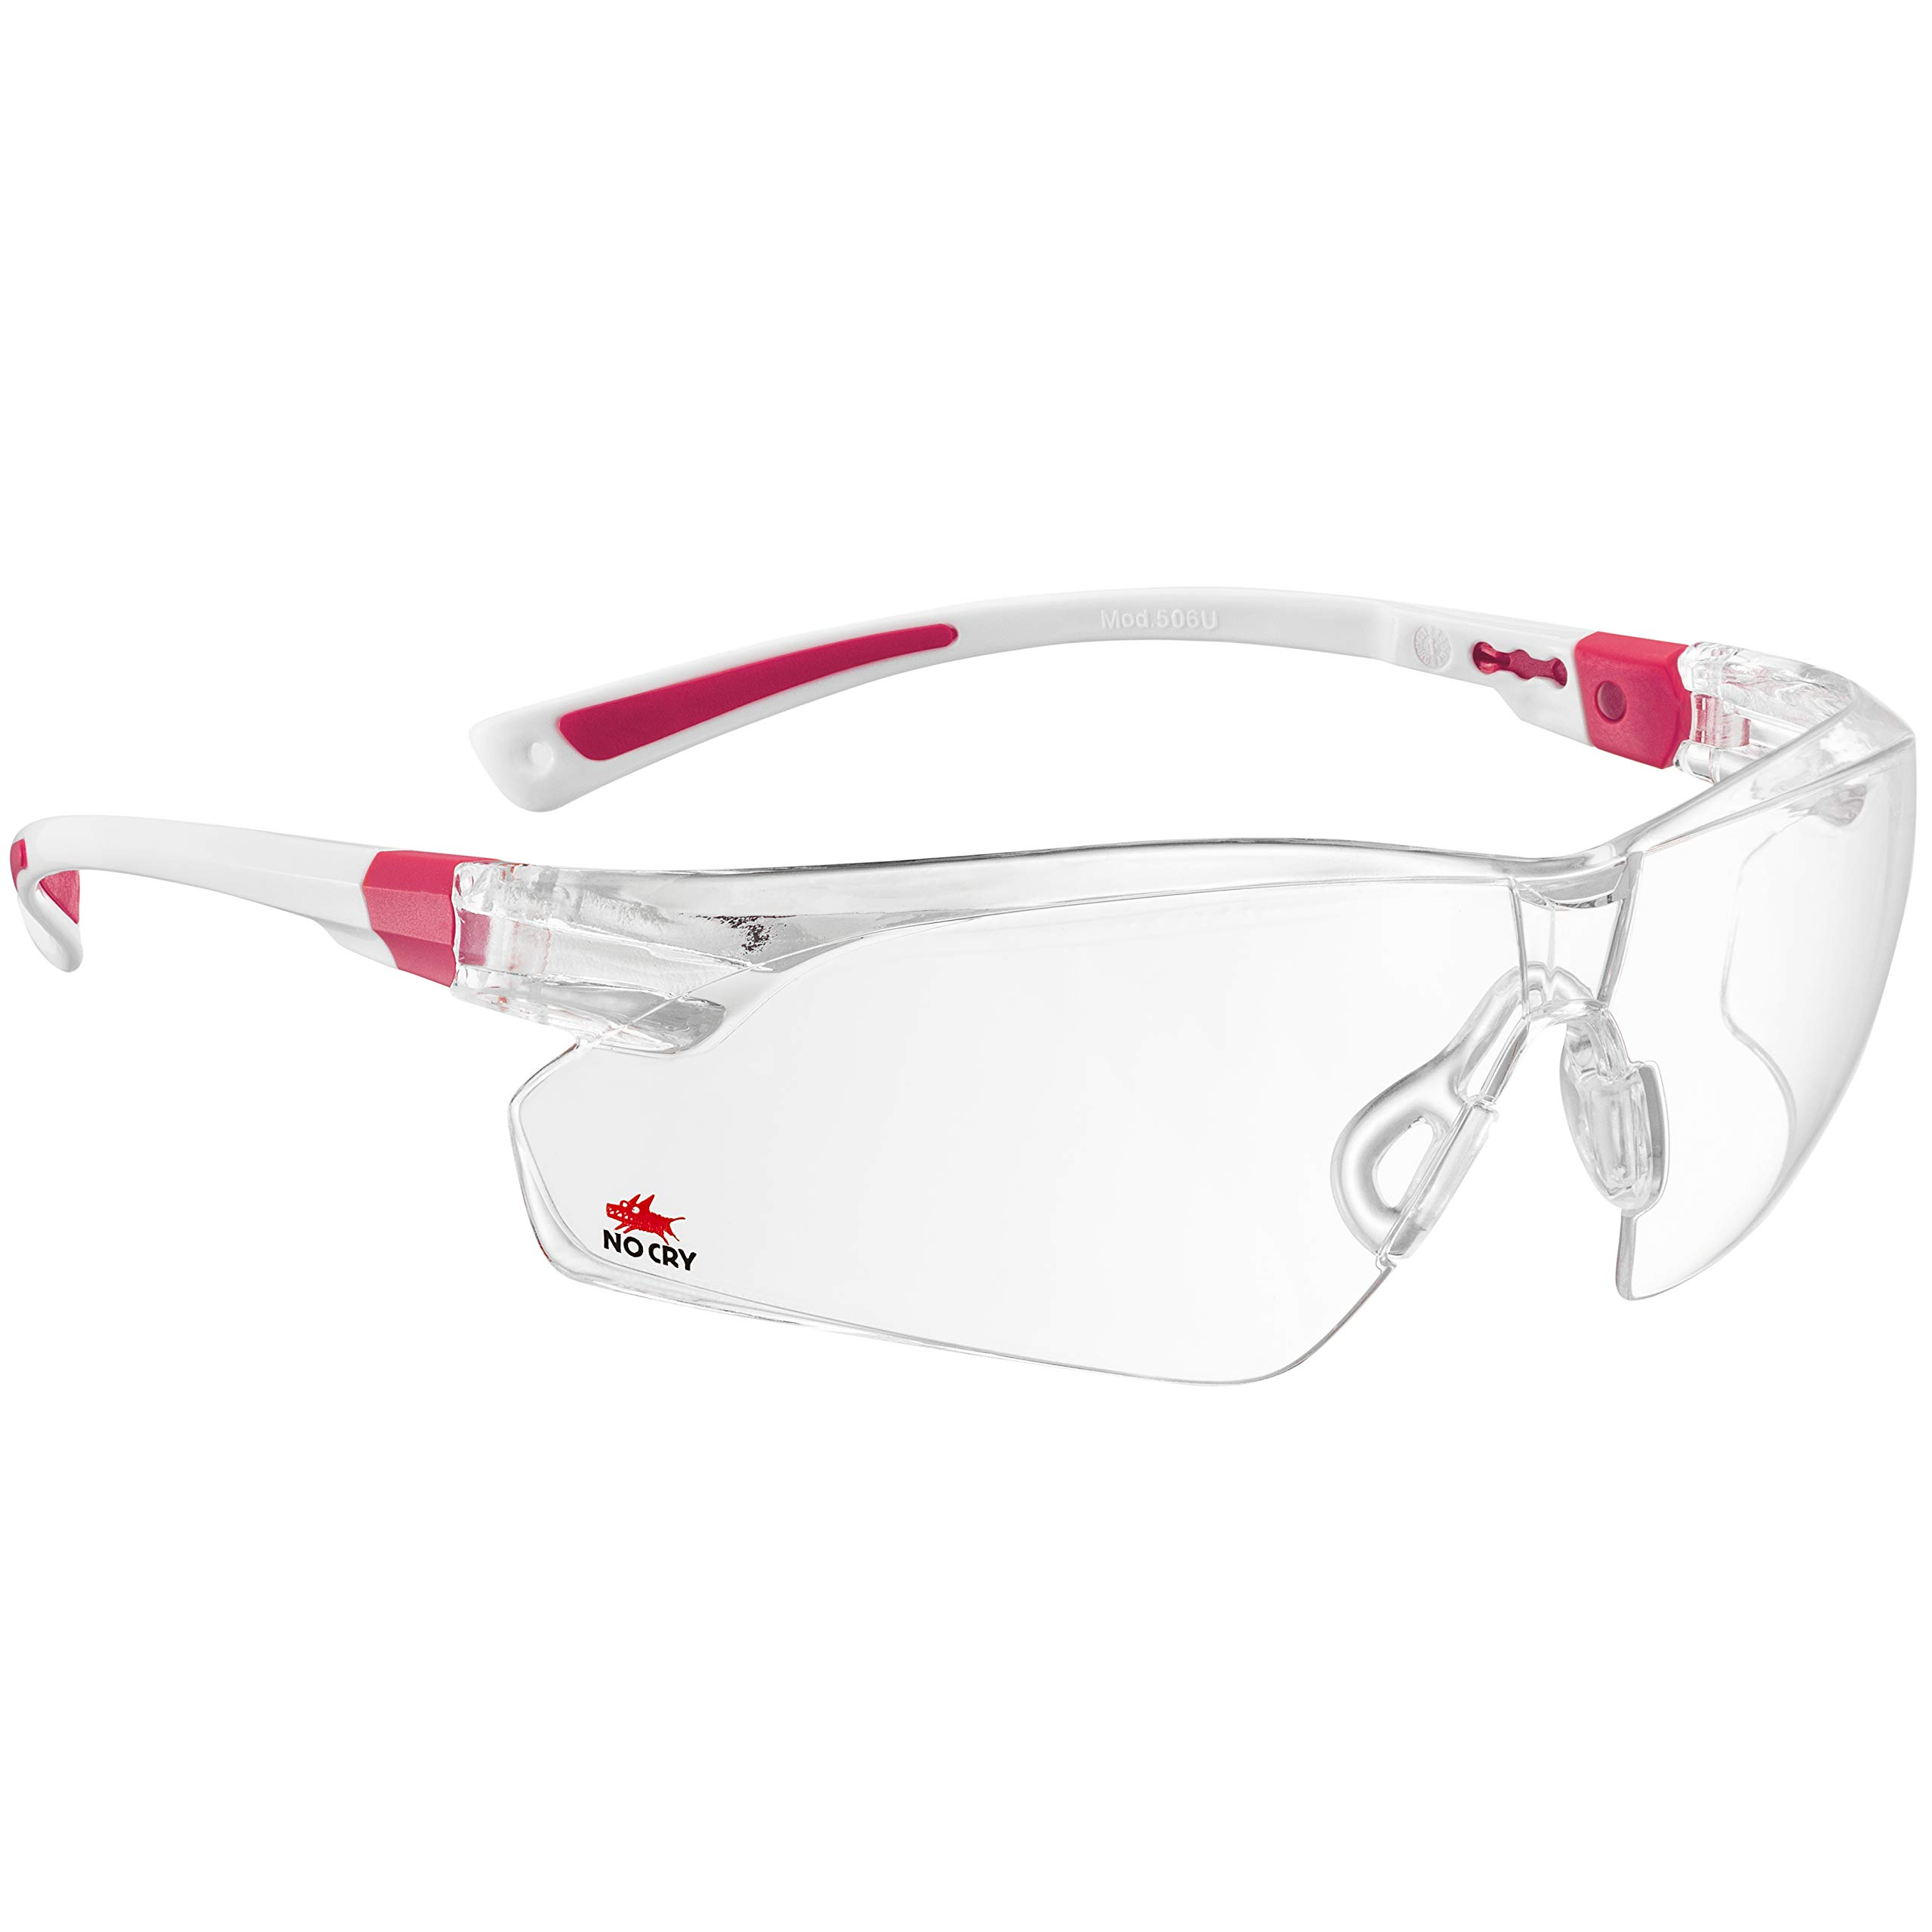 NoCry Safety Glasses with Clear Anti Fog Scratch Resistant Wrap-Around Lenses and No-Slip Grips, UV Protection. Adjustable, White & Pink Frames by NoCry